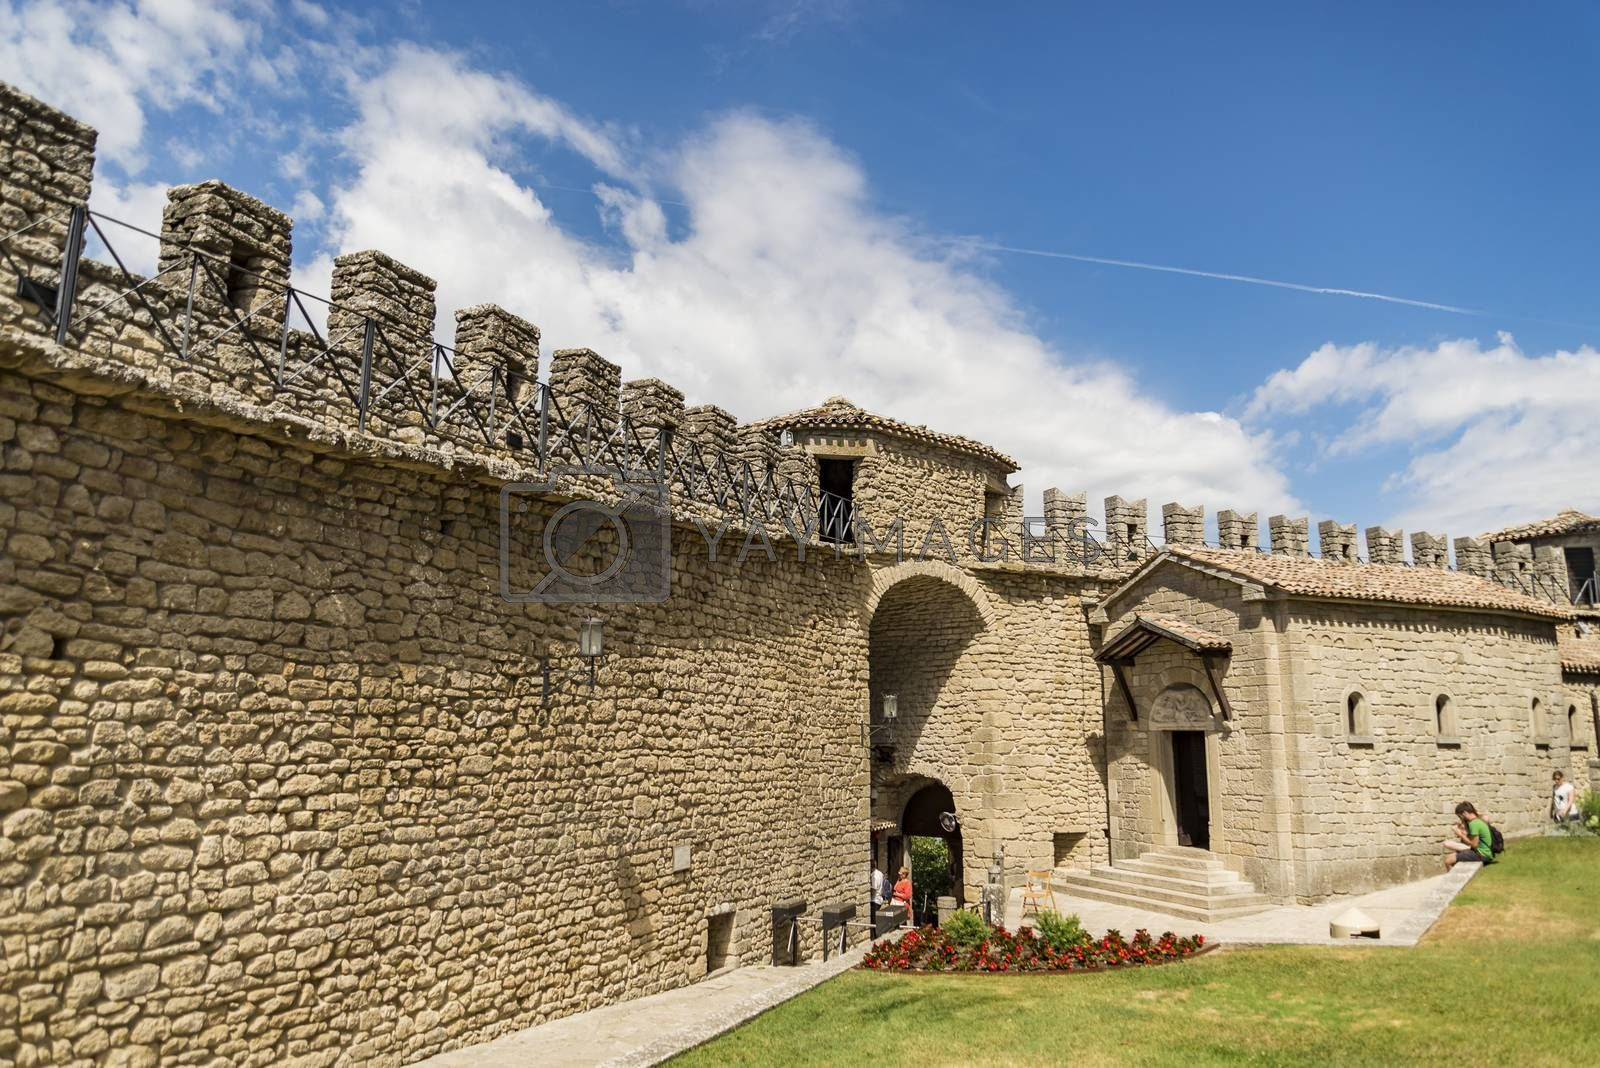 View of the fortress on the rock of San Marino Republic